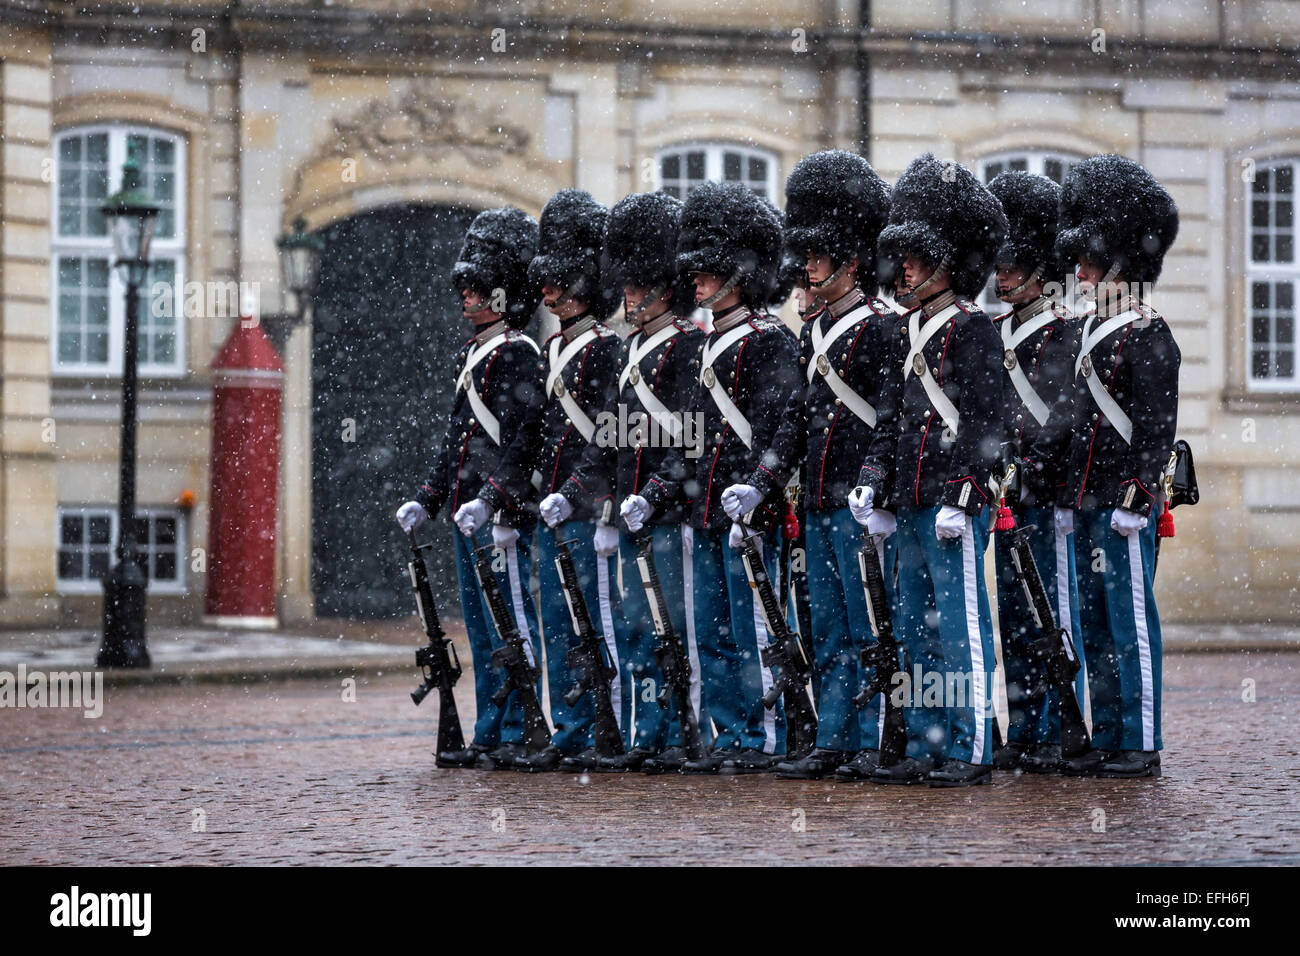 Royal Life Guards in front of Amalienborg Palace on a snowy day, Copenhagen, Denmark - Stock Image